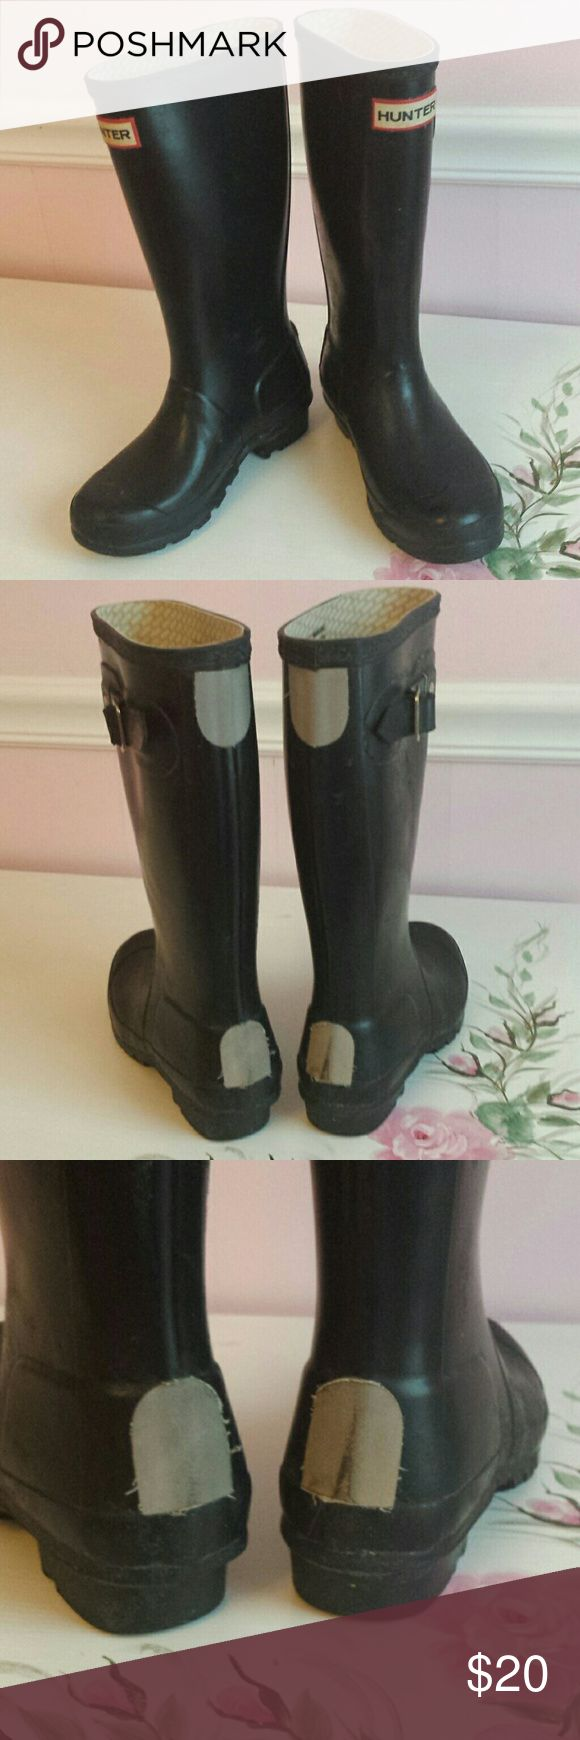 Girls Hunter Boots Black little girls Hunter boots, size 1M. Some fraying around reflective covering on back and one is slighly loose (see pic) Scuffs and some texturing to outer but boots still in good useable condition. Hunter Boots Shoes Boots